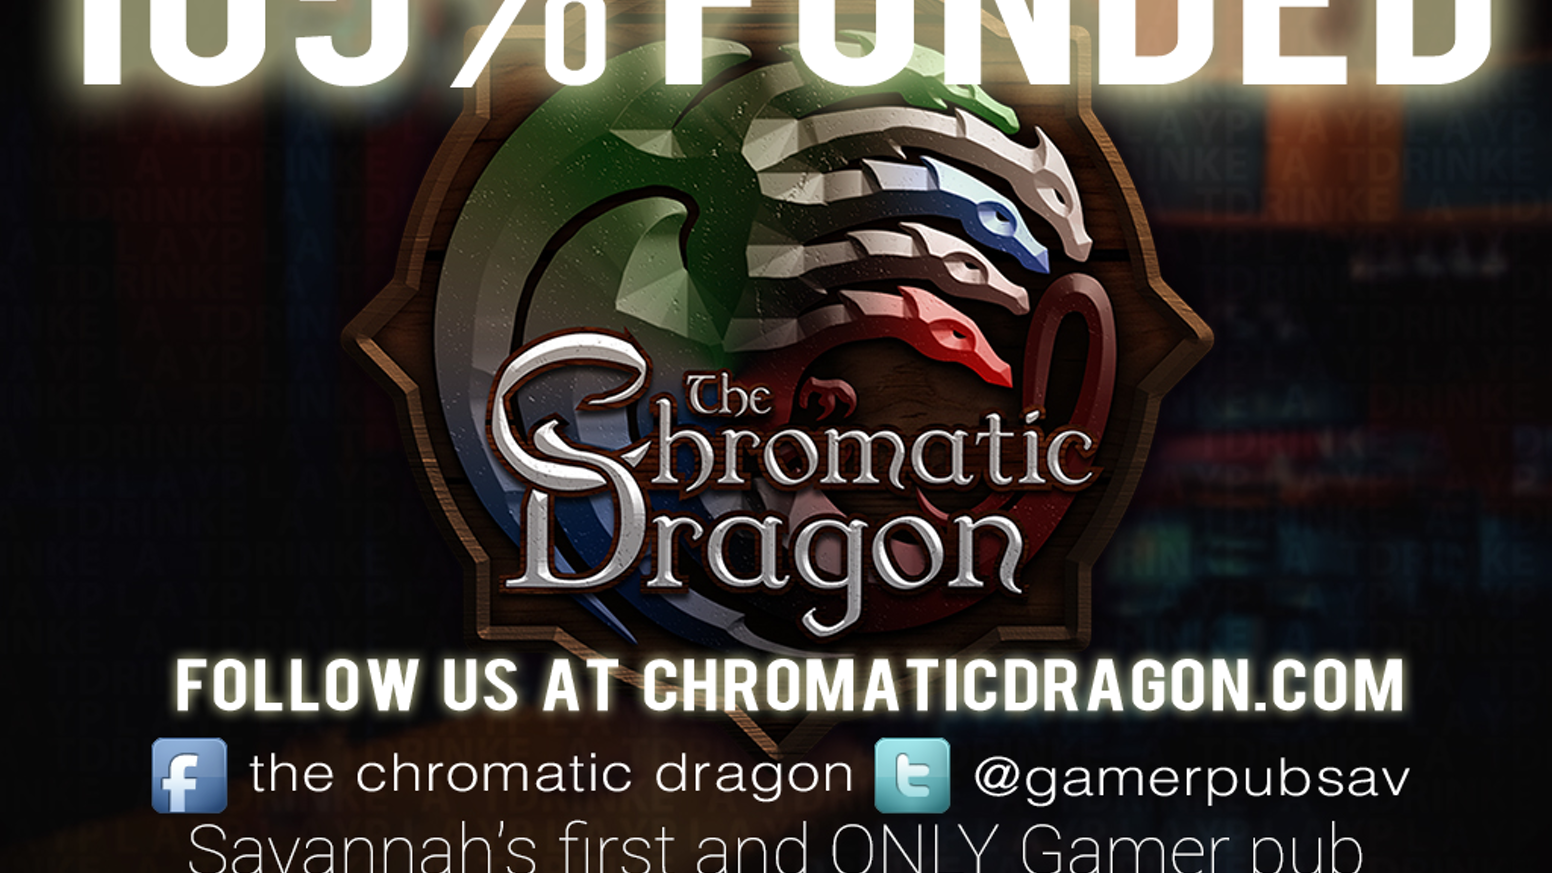 The Chromatic Dragon: play a video game or board game, have a beer, and eat some dinner - all without leaving your seat.